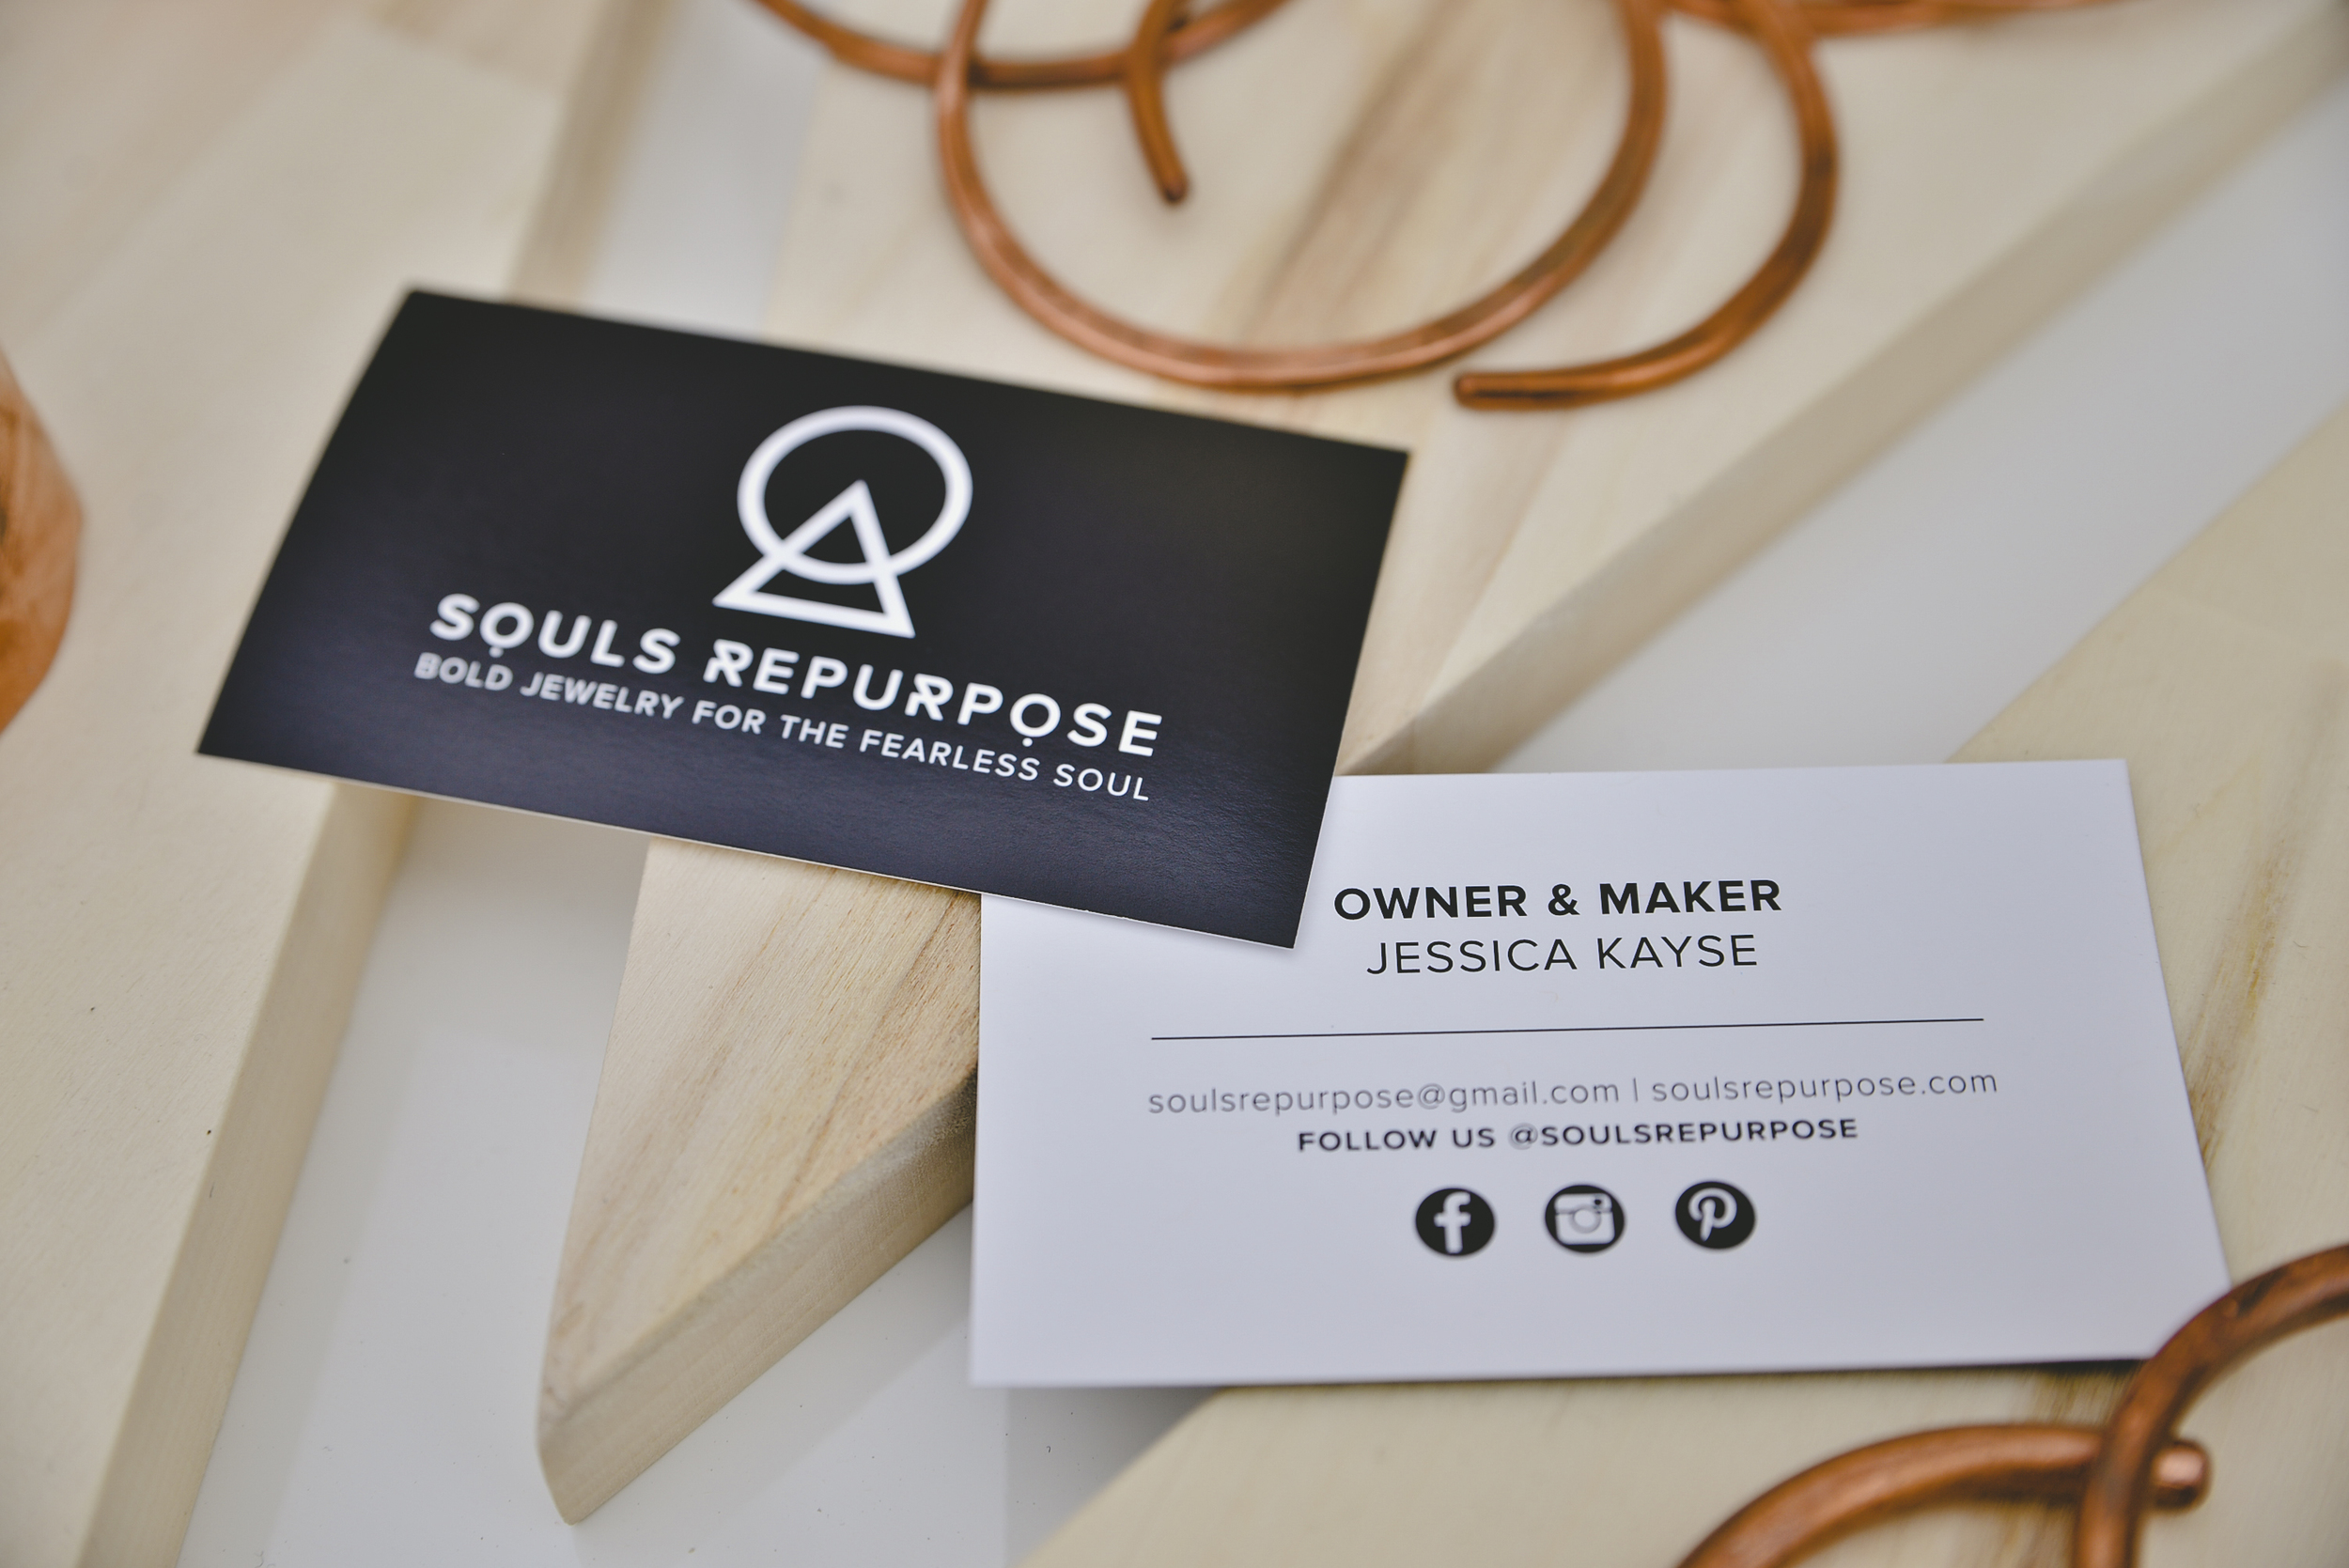 Souls Repurpose's bold business cards.